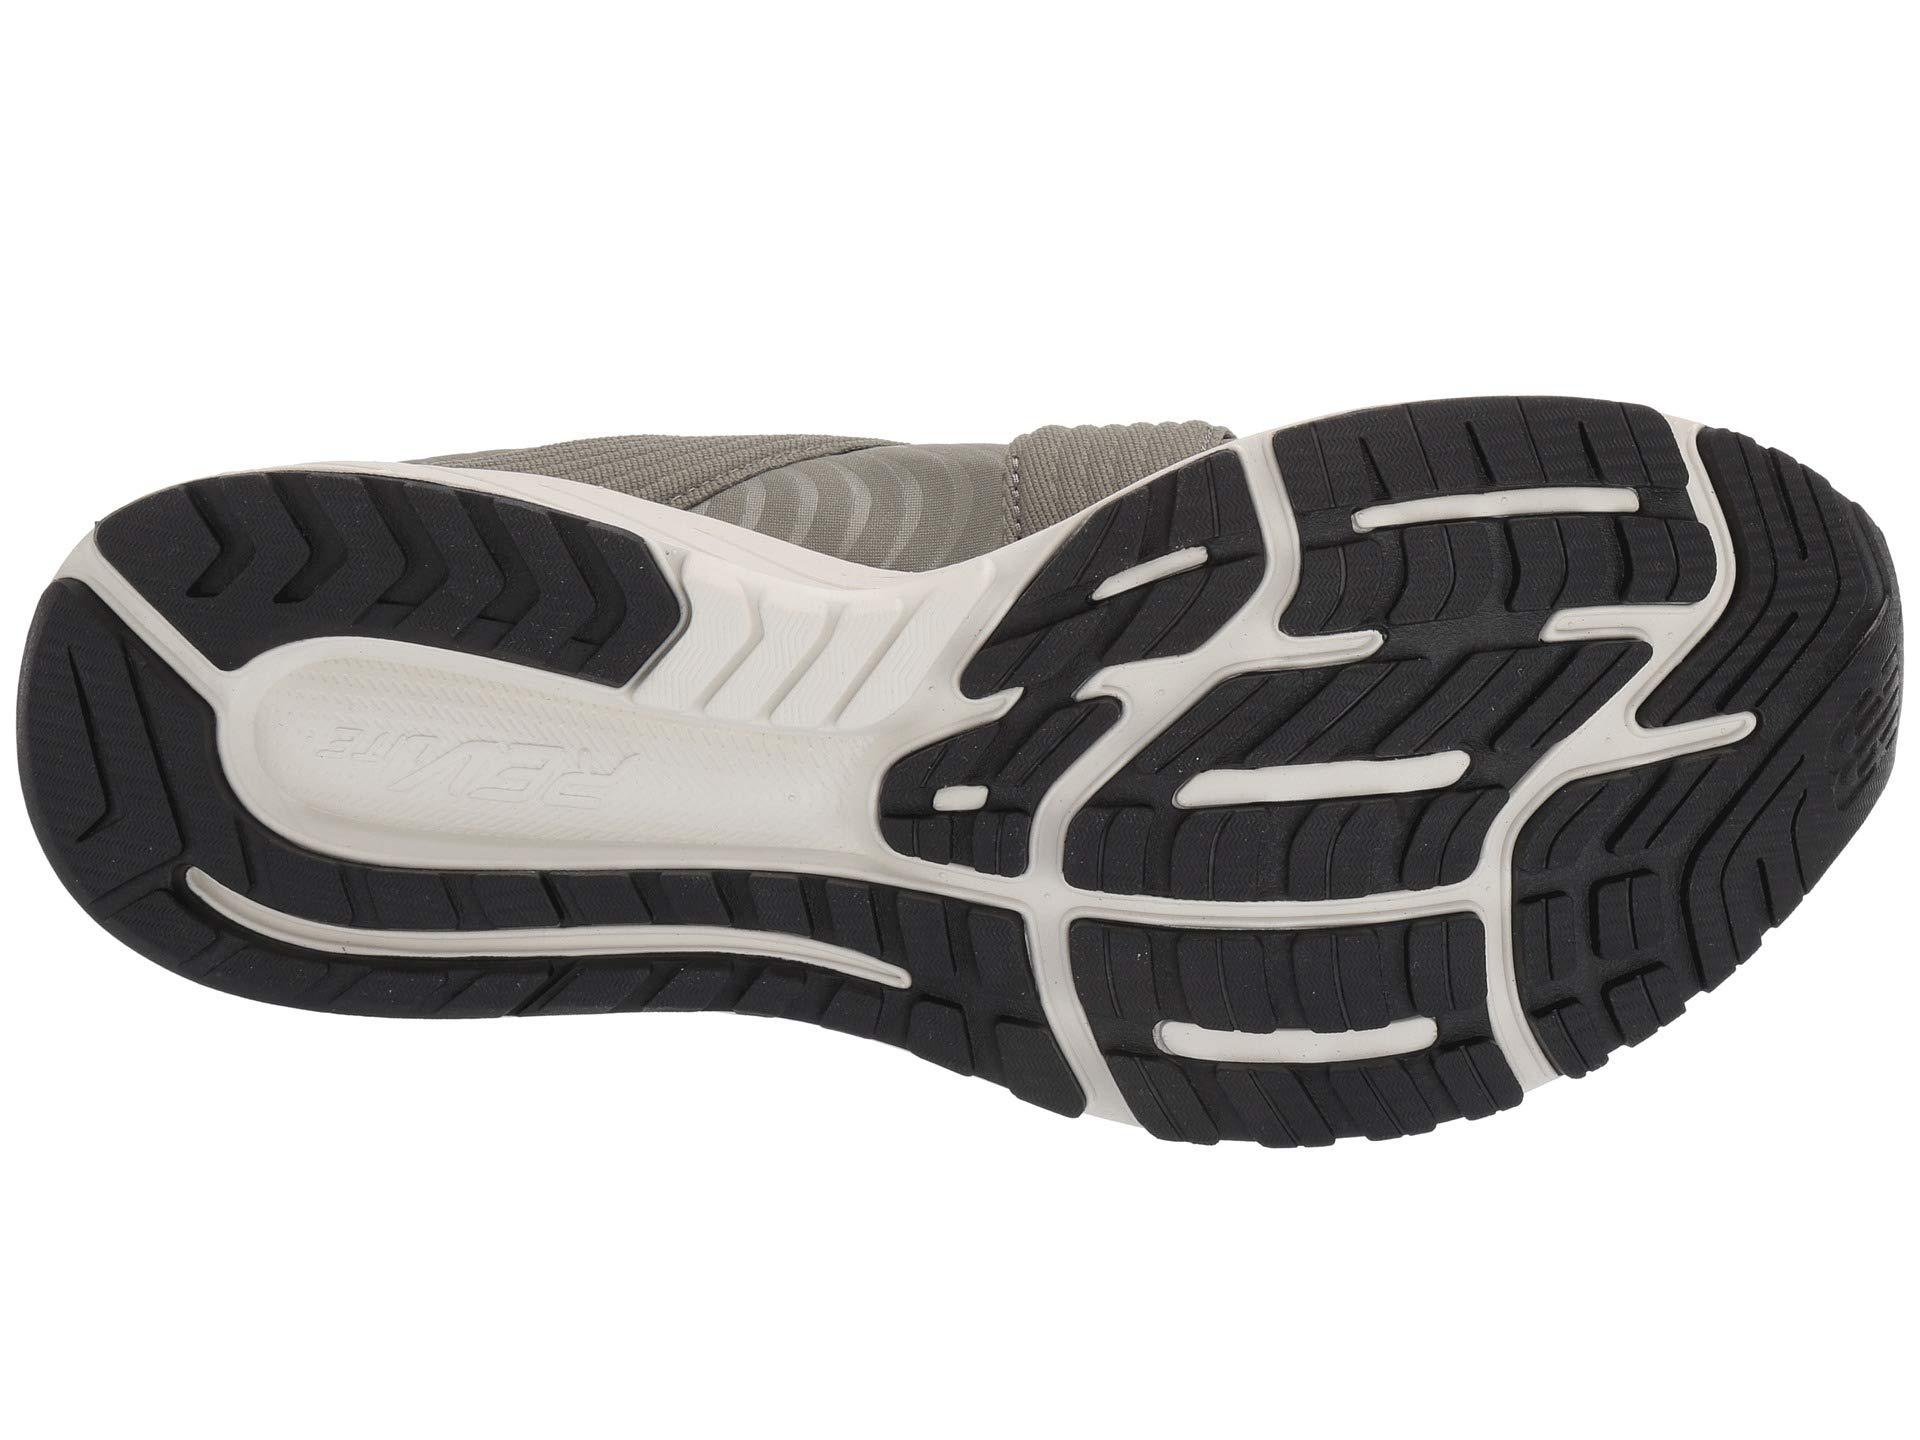 finest selection 0abfa db891 New Balance - Fuelcore Sonic V2 (black flame) Men s Running Shoes for Men.  View fullscreen